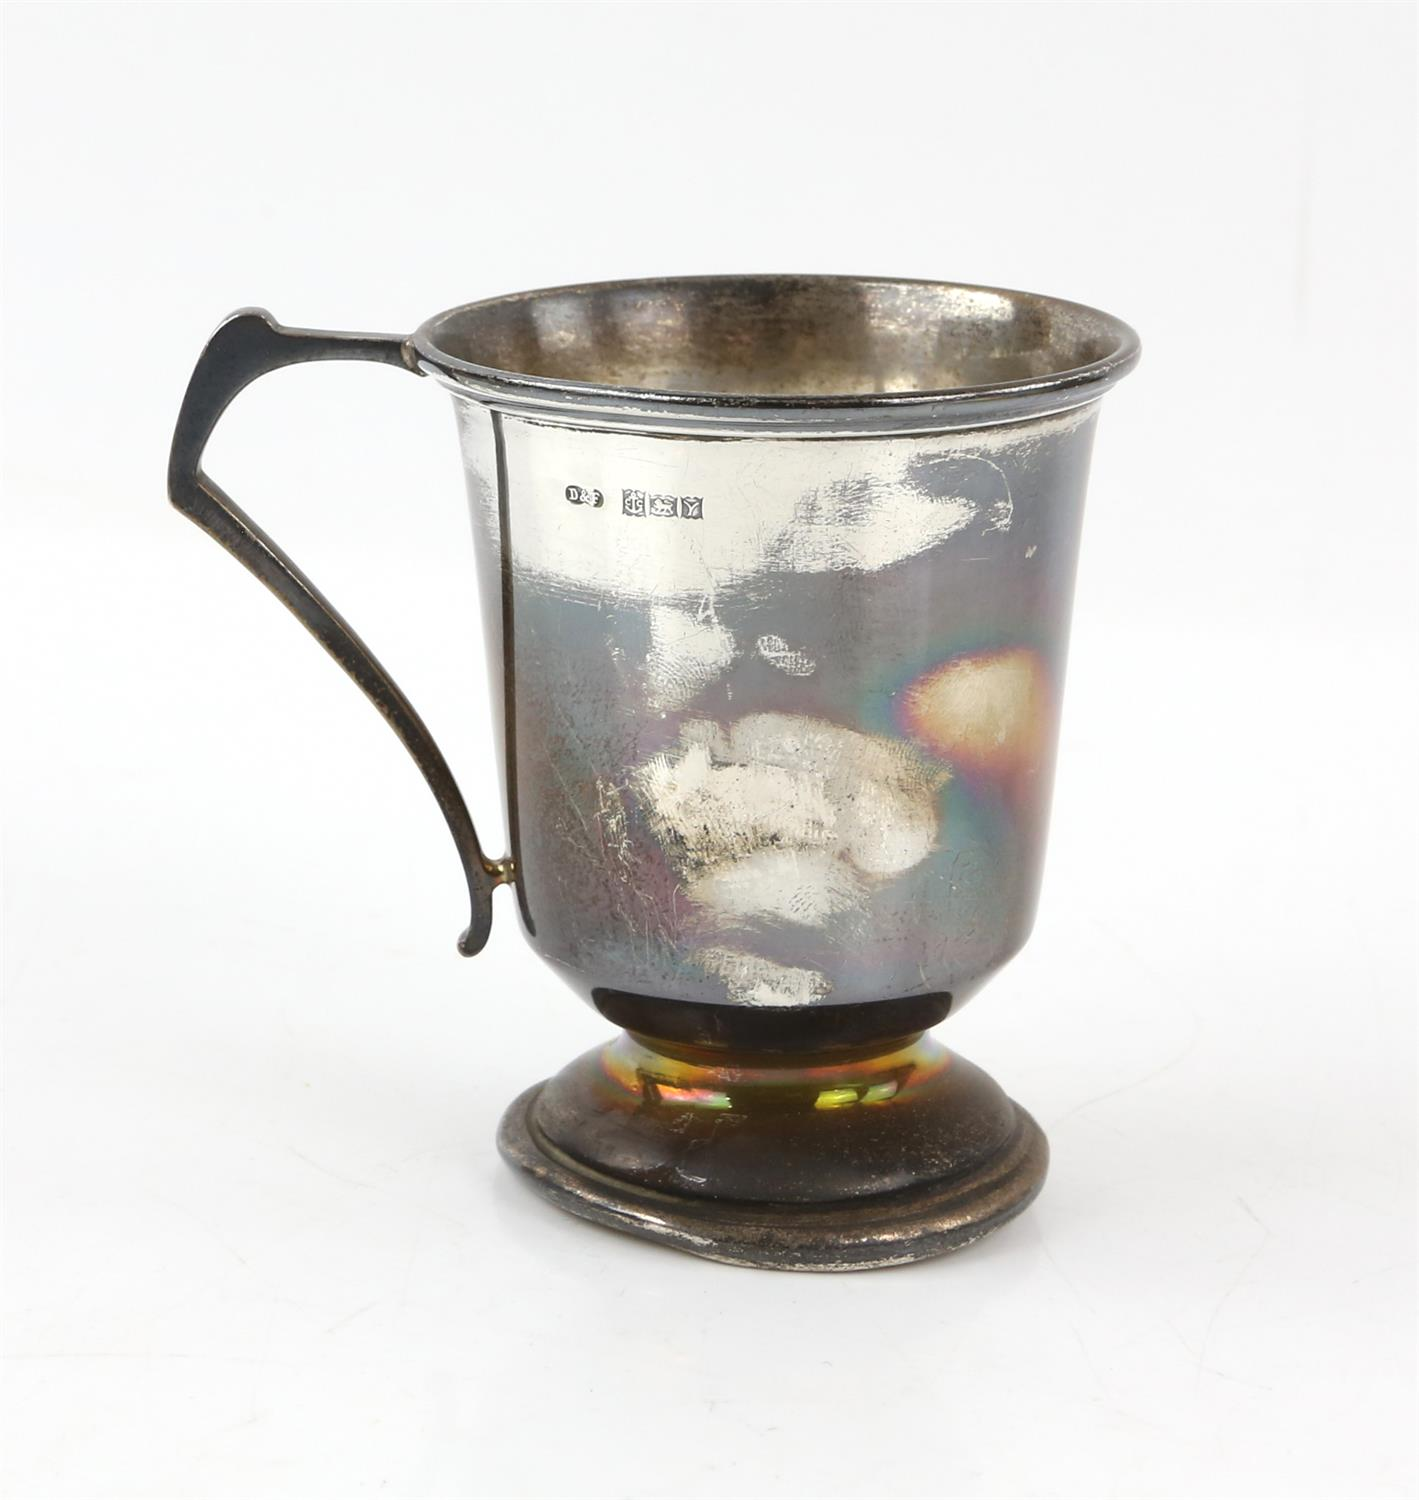 Edward VII silver cream jug with 'S'-scroll handle on round foot, by Ackroyd Rhodes, London, 1904, - Image 6 of 7